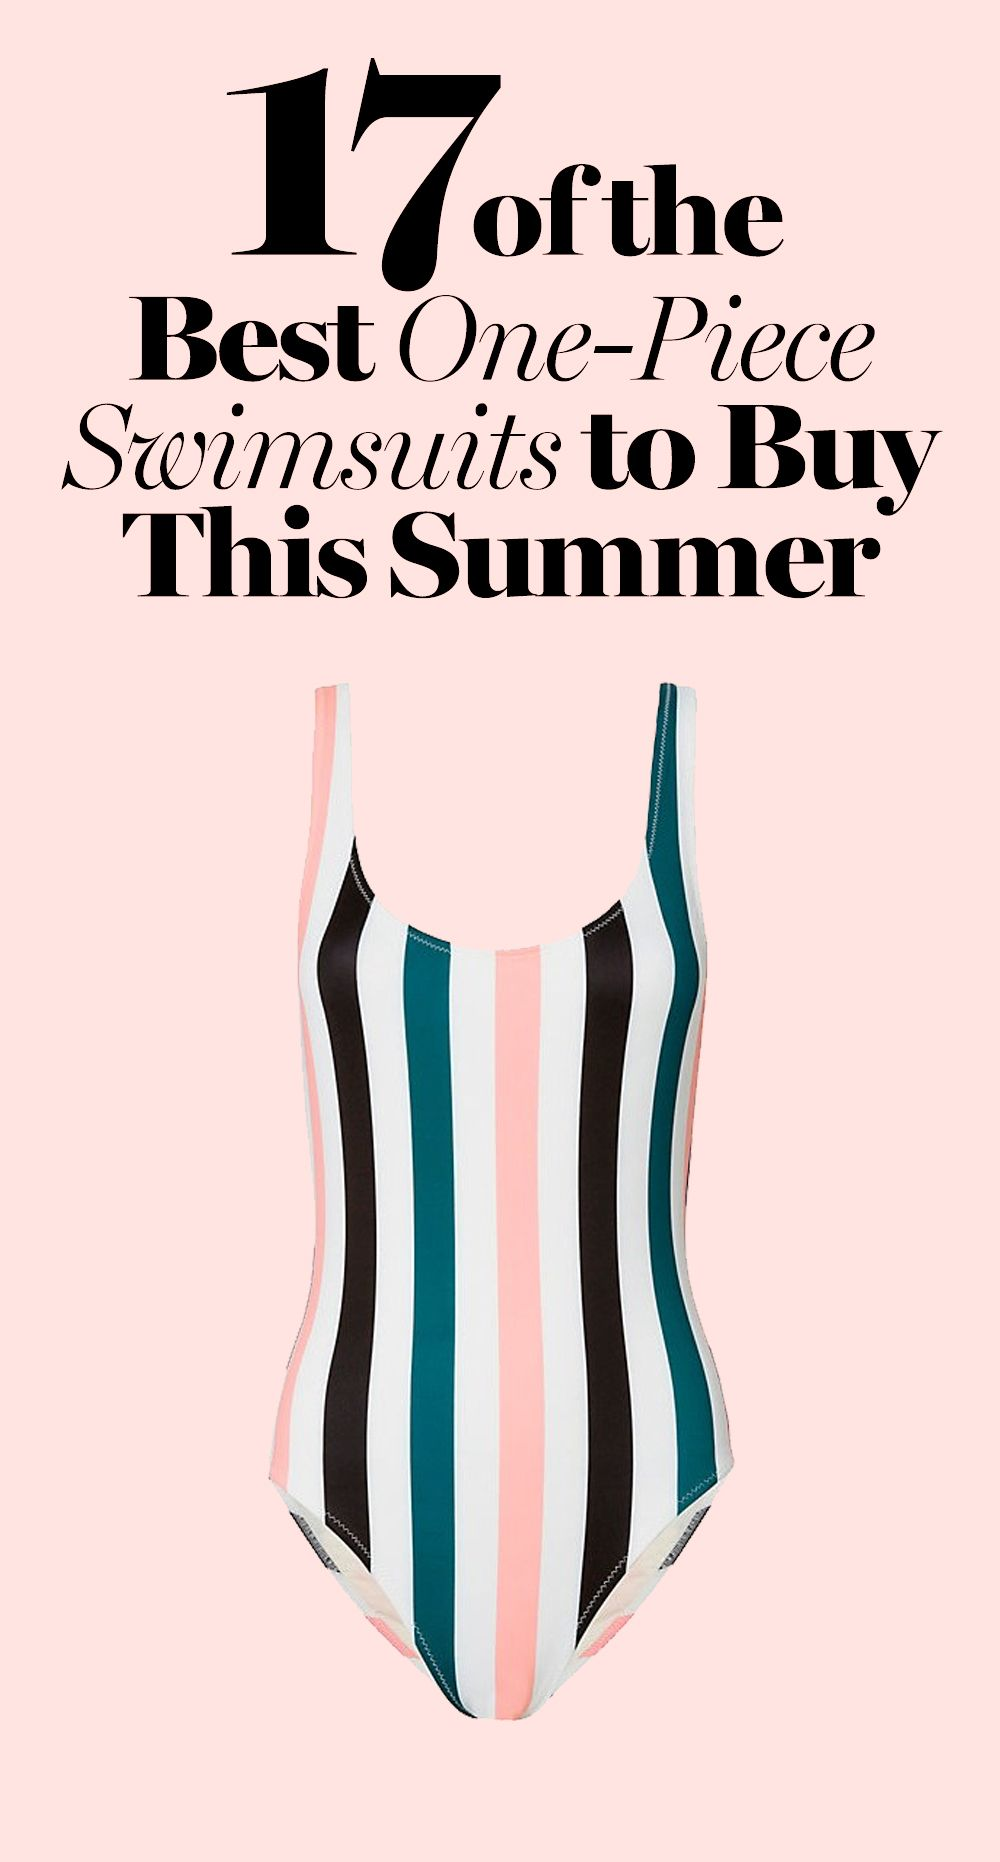 9fdbb7b315 17 of the Best One-Piece Swimsuits for Summer 2017